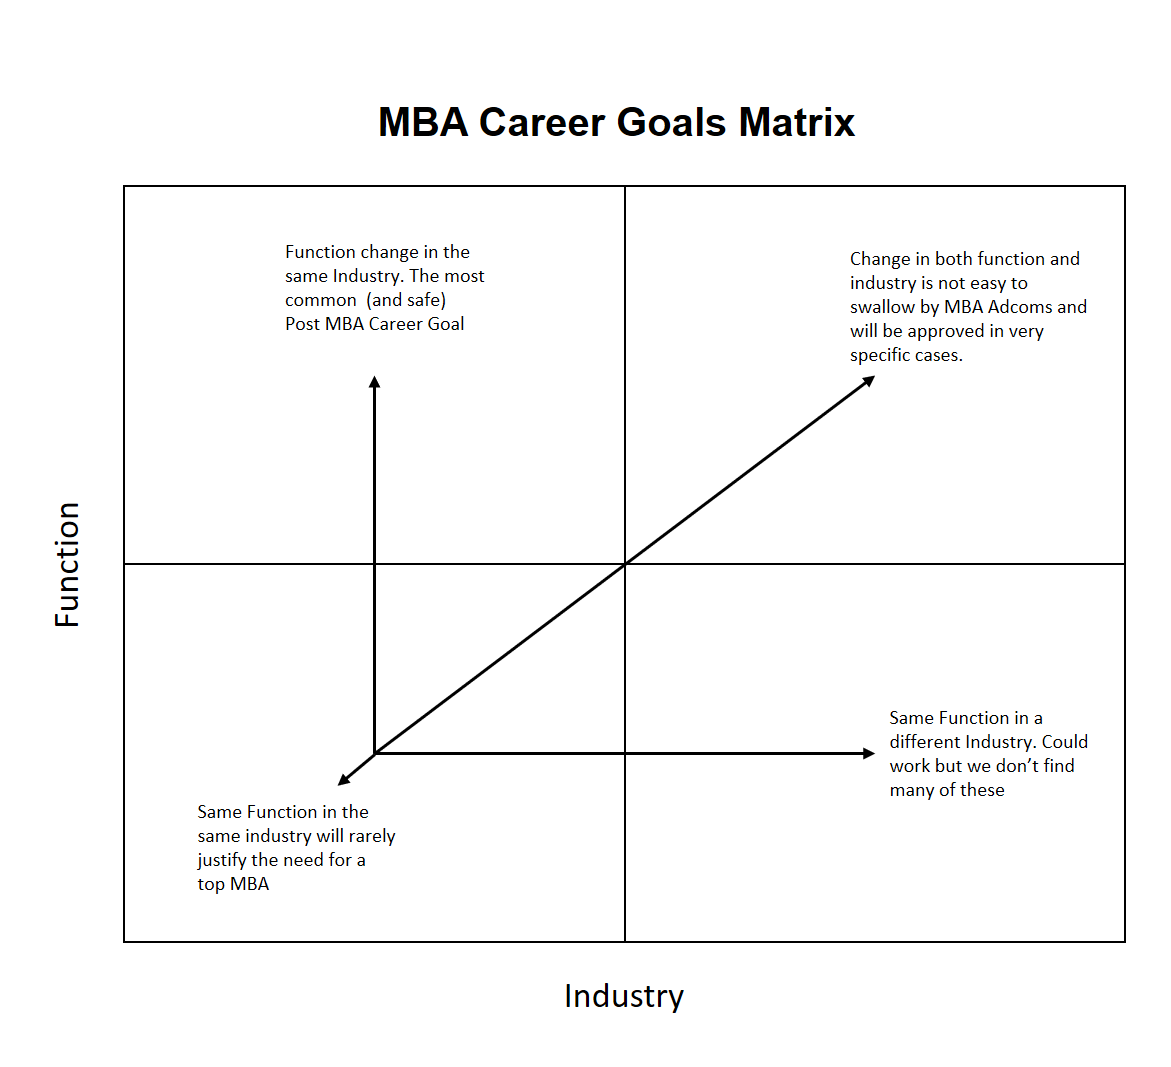 mba essays consulting Mba essay consulting services are many online, but not every consulting is appropriate for your requirement too.